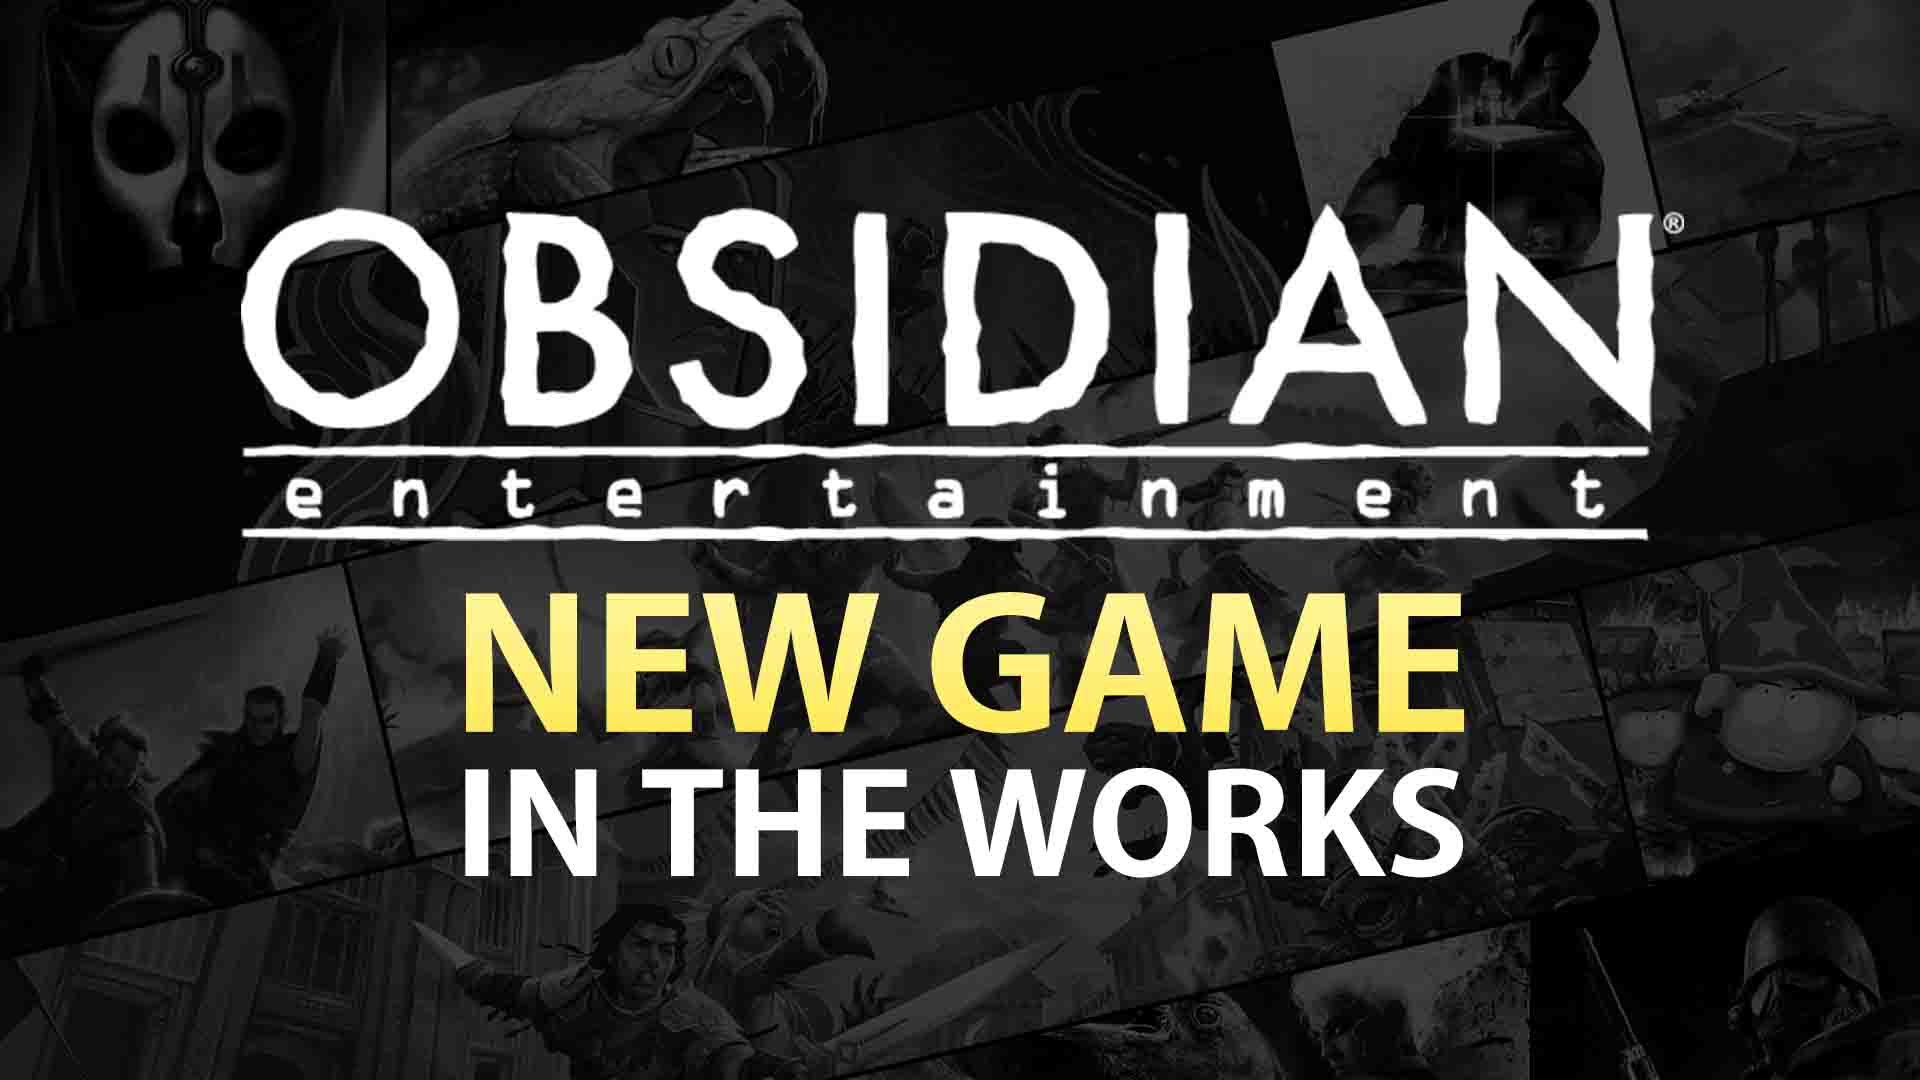 obsidian-entertainment-new-game-in-the-works-rpg-crpg-video-games